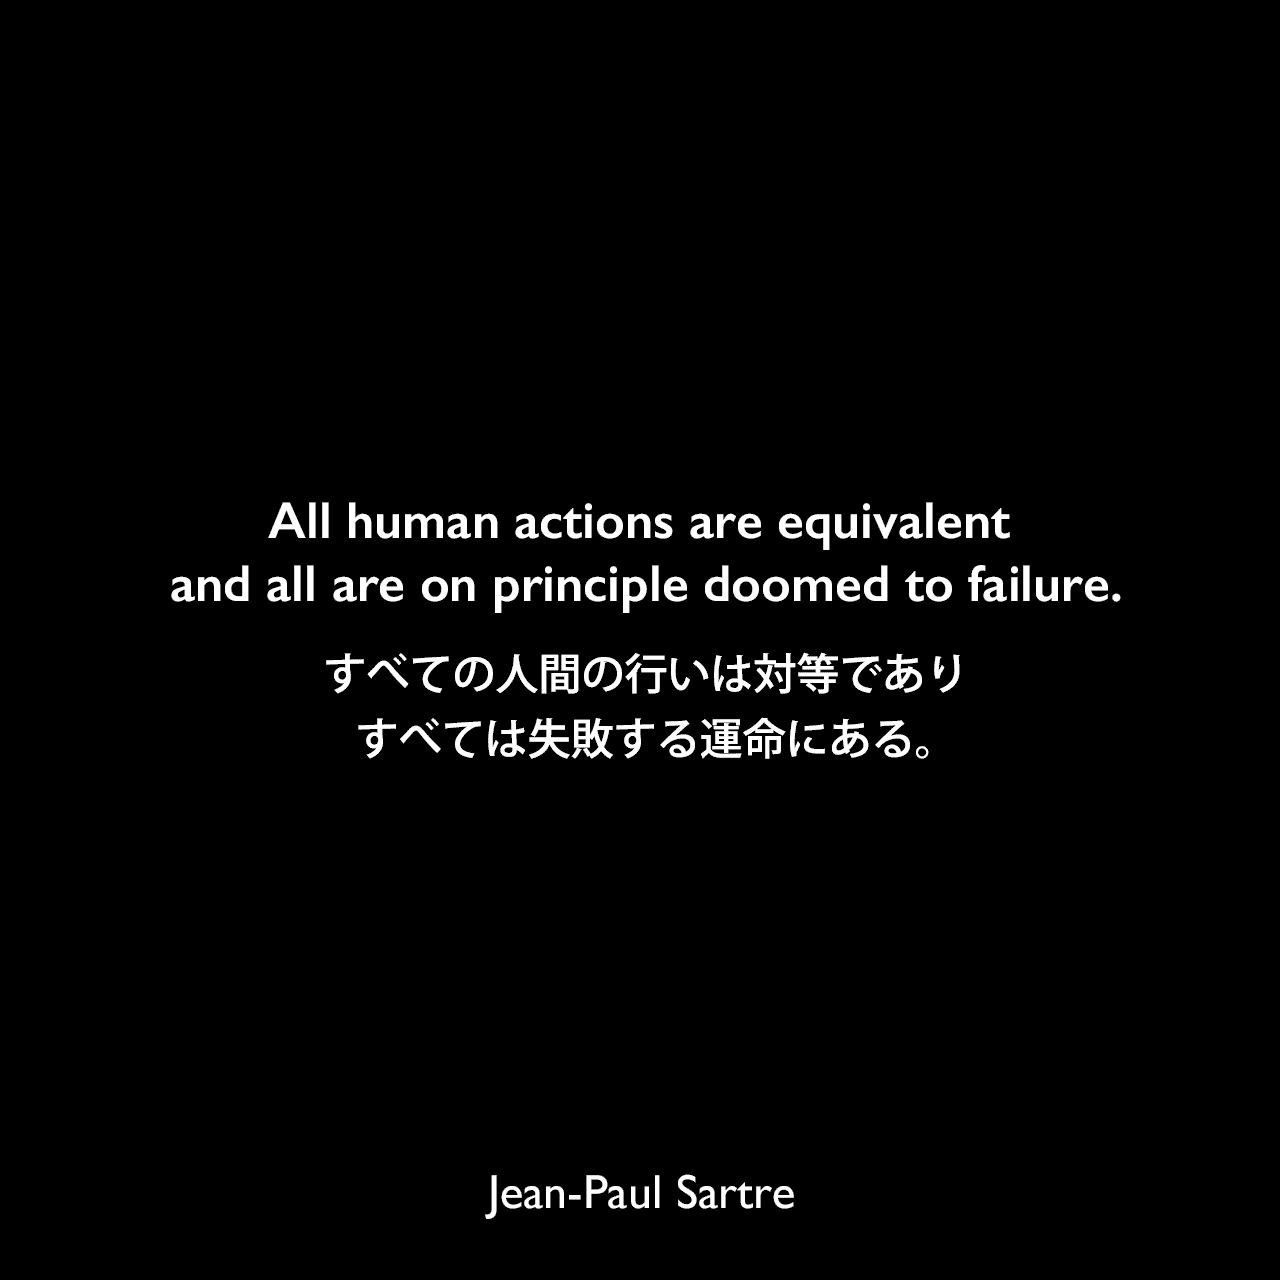 All human actions are equivalent and all are on principle doomed to failure.すべての人間の行いは対等であり、すべては失敗する運命にある。- サルトルによる本「存在と無」よりJean-Paul Sartre